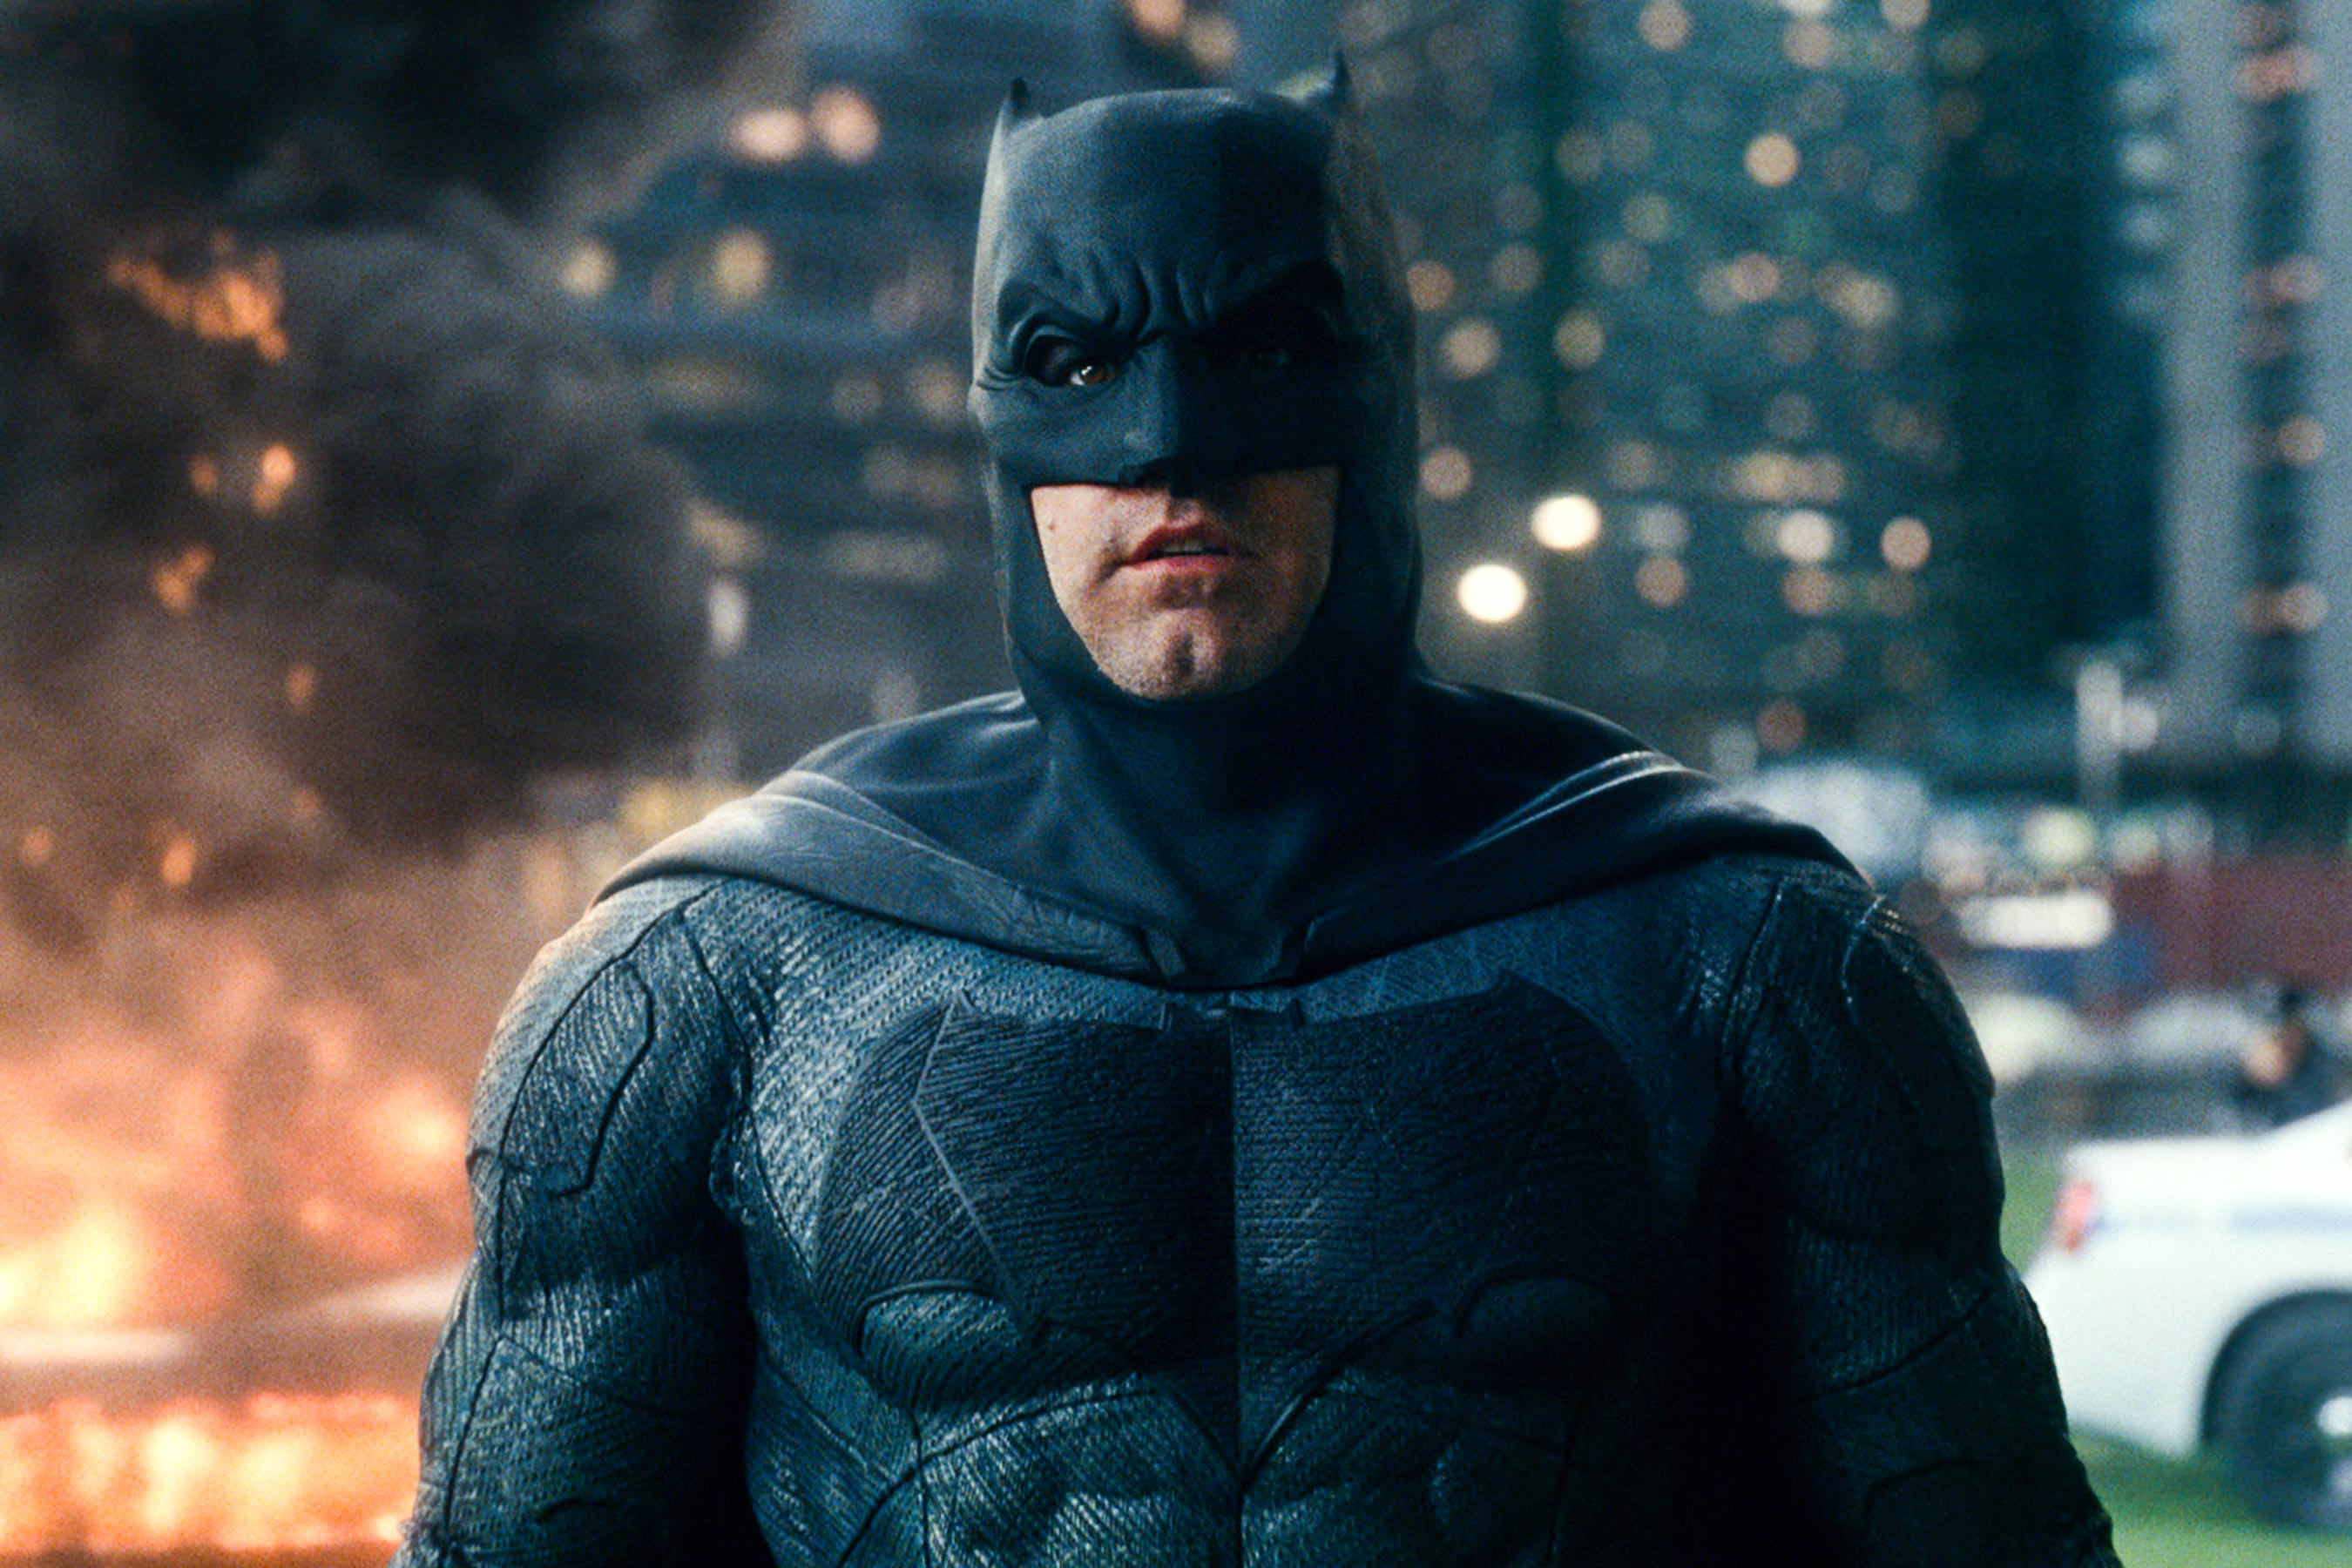 'Justice League' Fans Are Already Begging New Warner Bros. CEO to Release the Snyder Cut